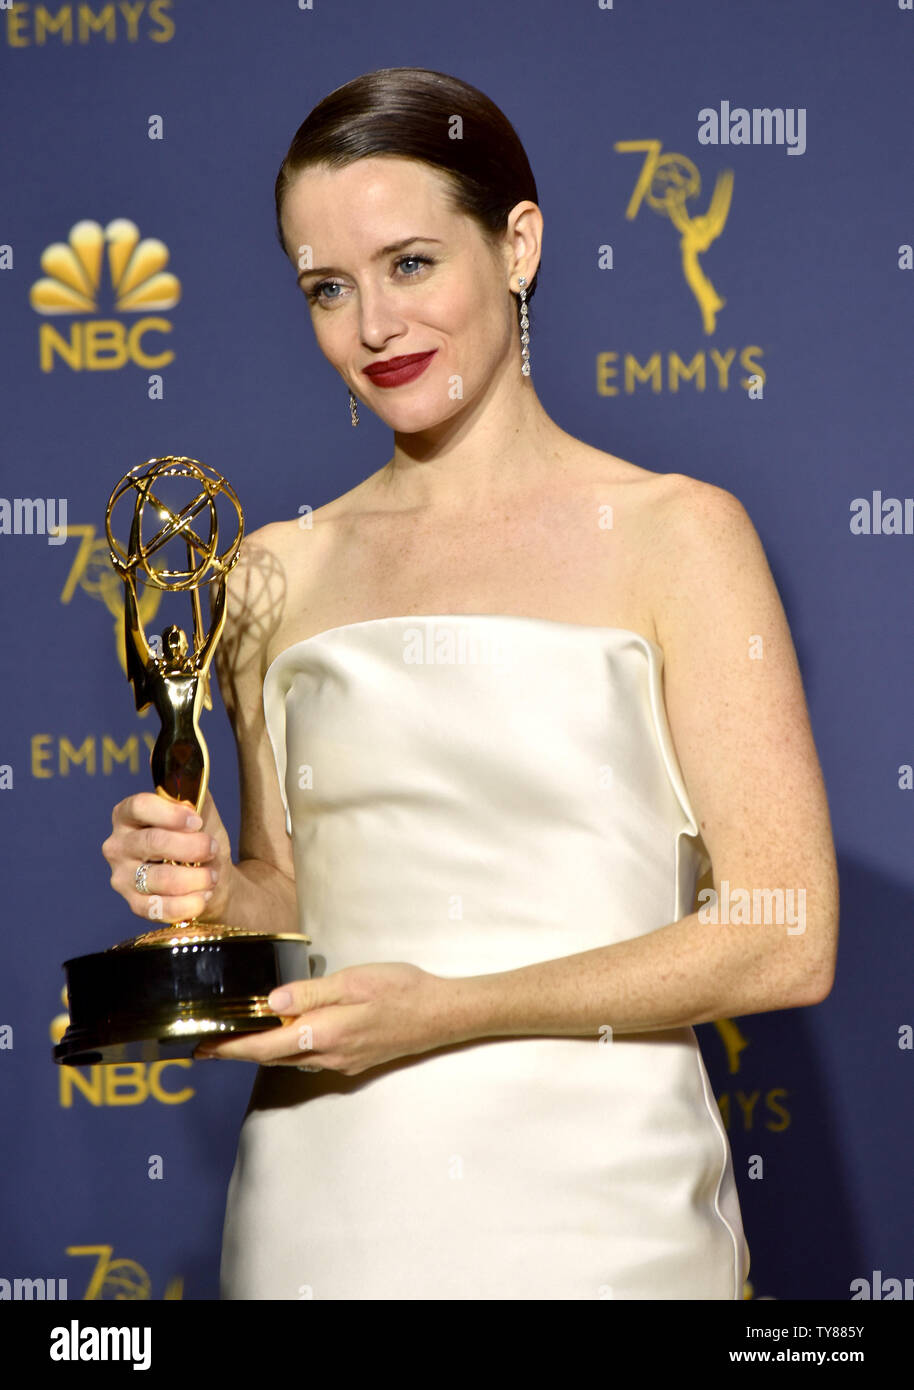 Primetime Emmy Award for Outstanding Lead Actress in a Drama Series